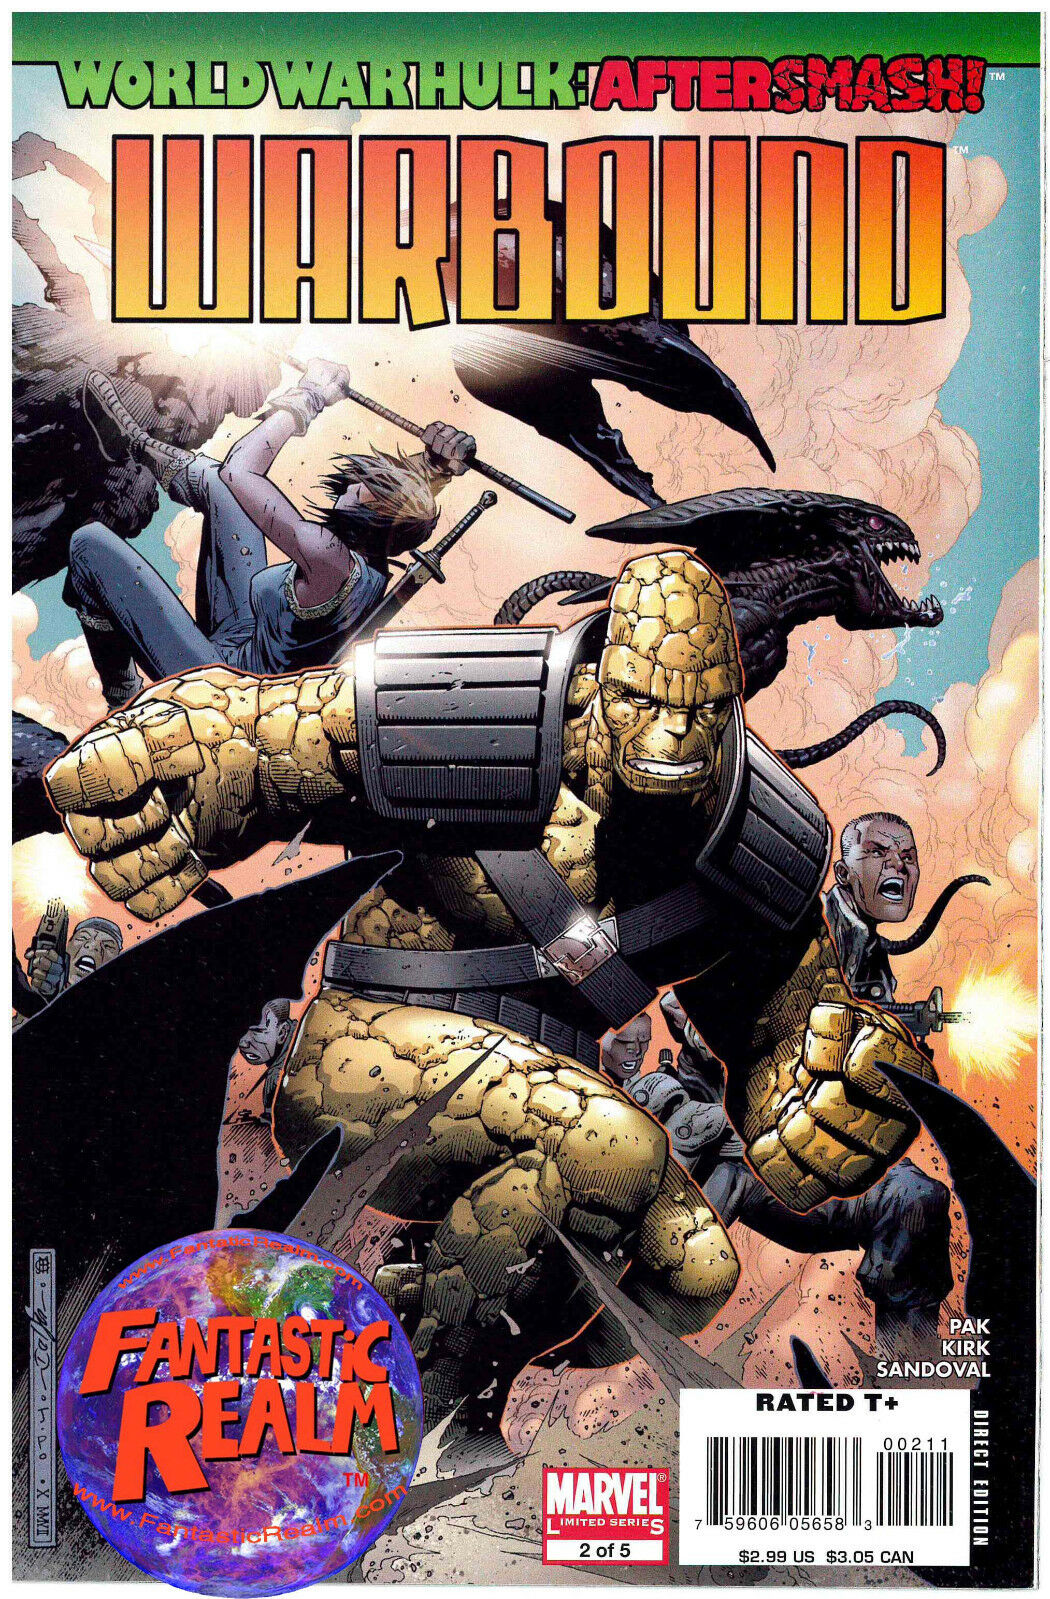 WARBOUND #2 OF 5 WORLD WAR HULK AFTERSMASH MARVEL COMICS